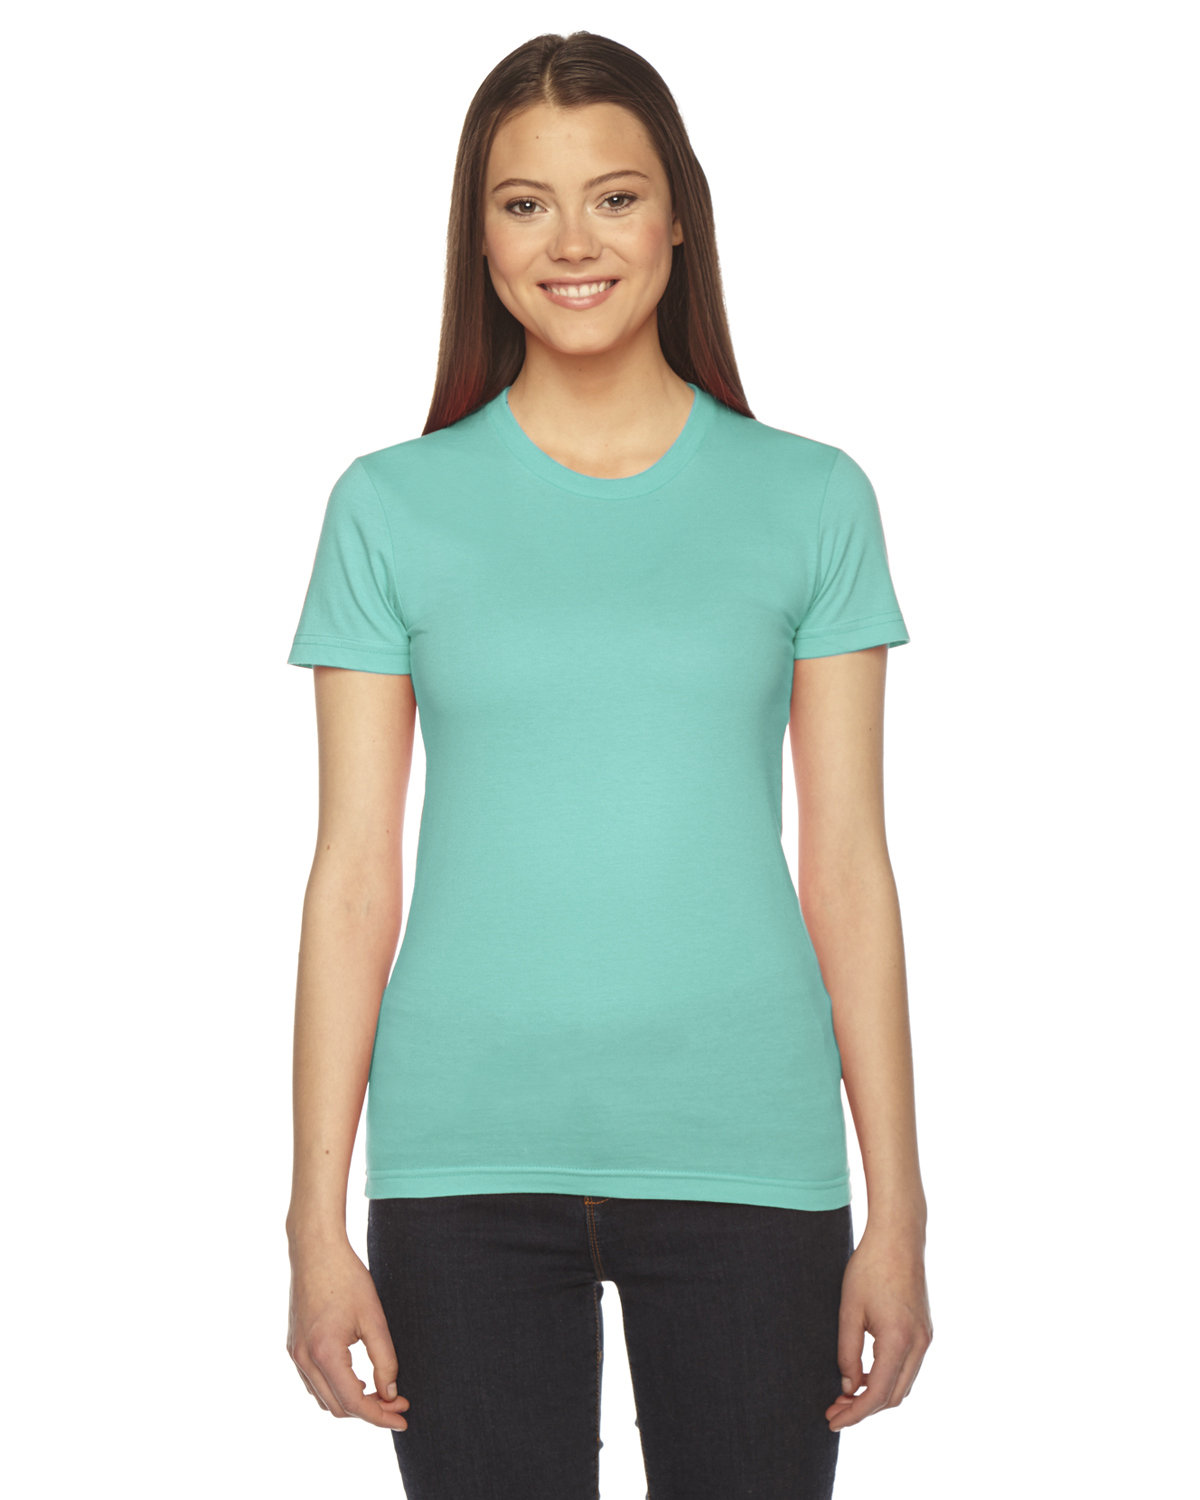 American Apparel Ladies' Fine Jersey Short-Sleeve T-Shirt MINT